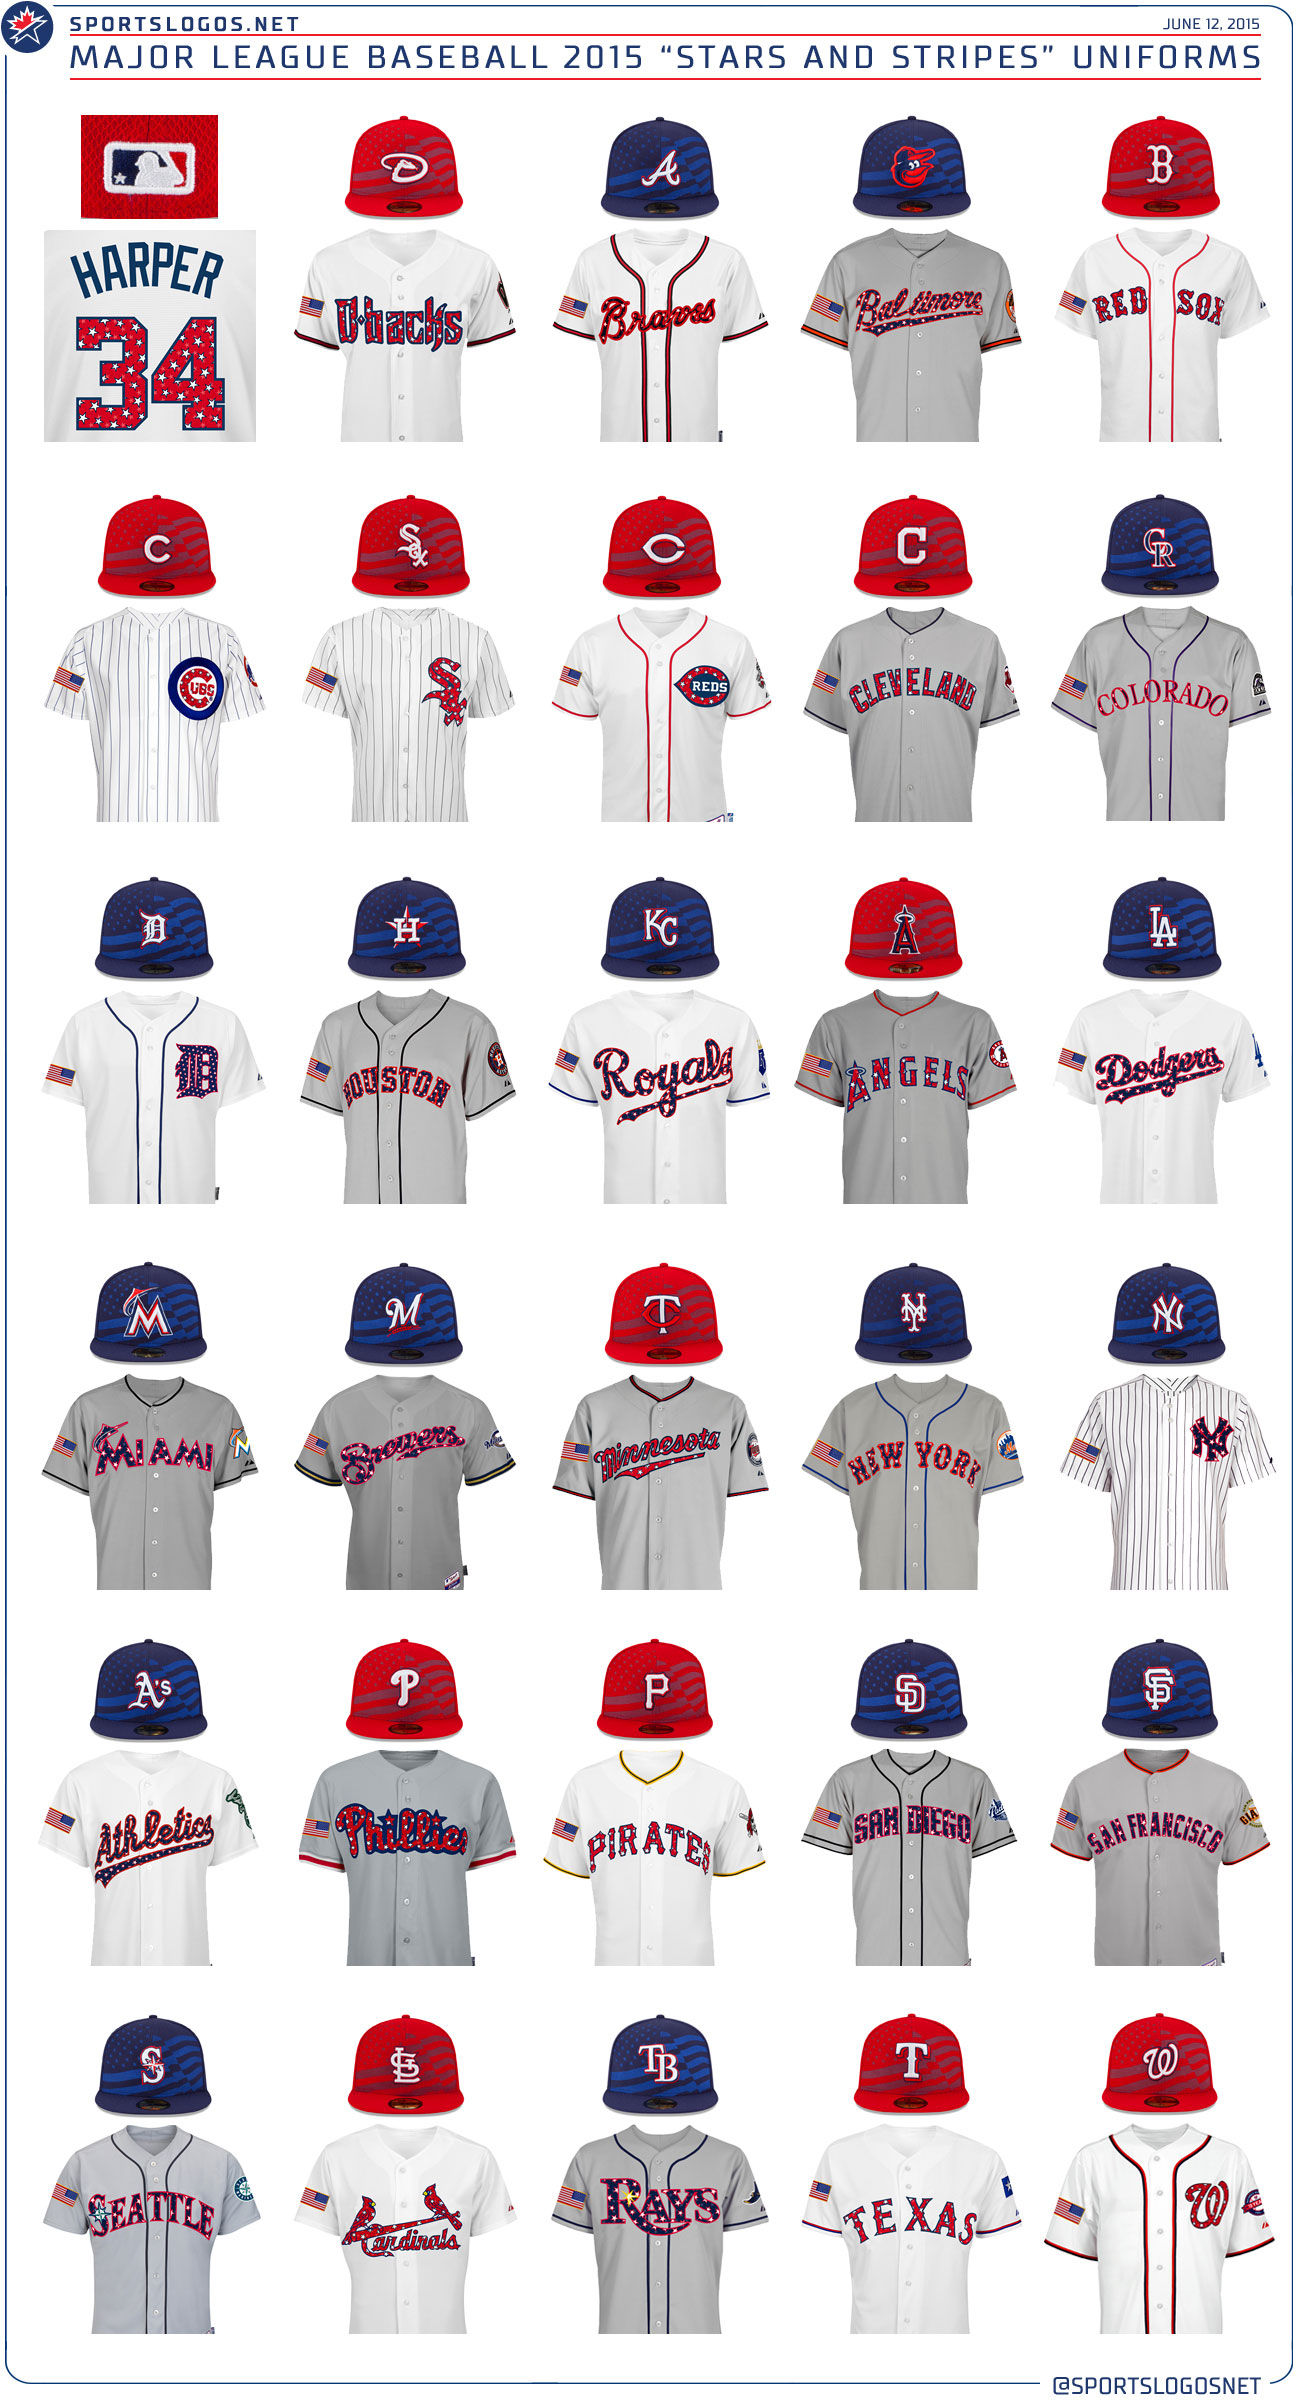 2015-MLB-Stars-and-Stripes-Uniforms.jpg